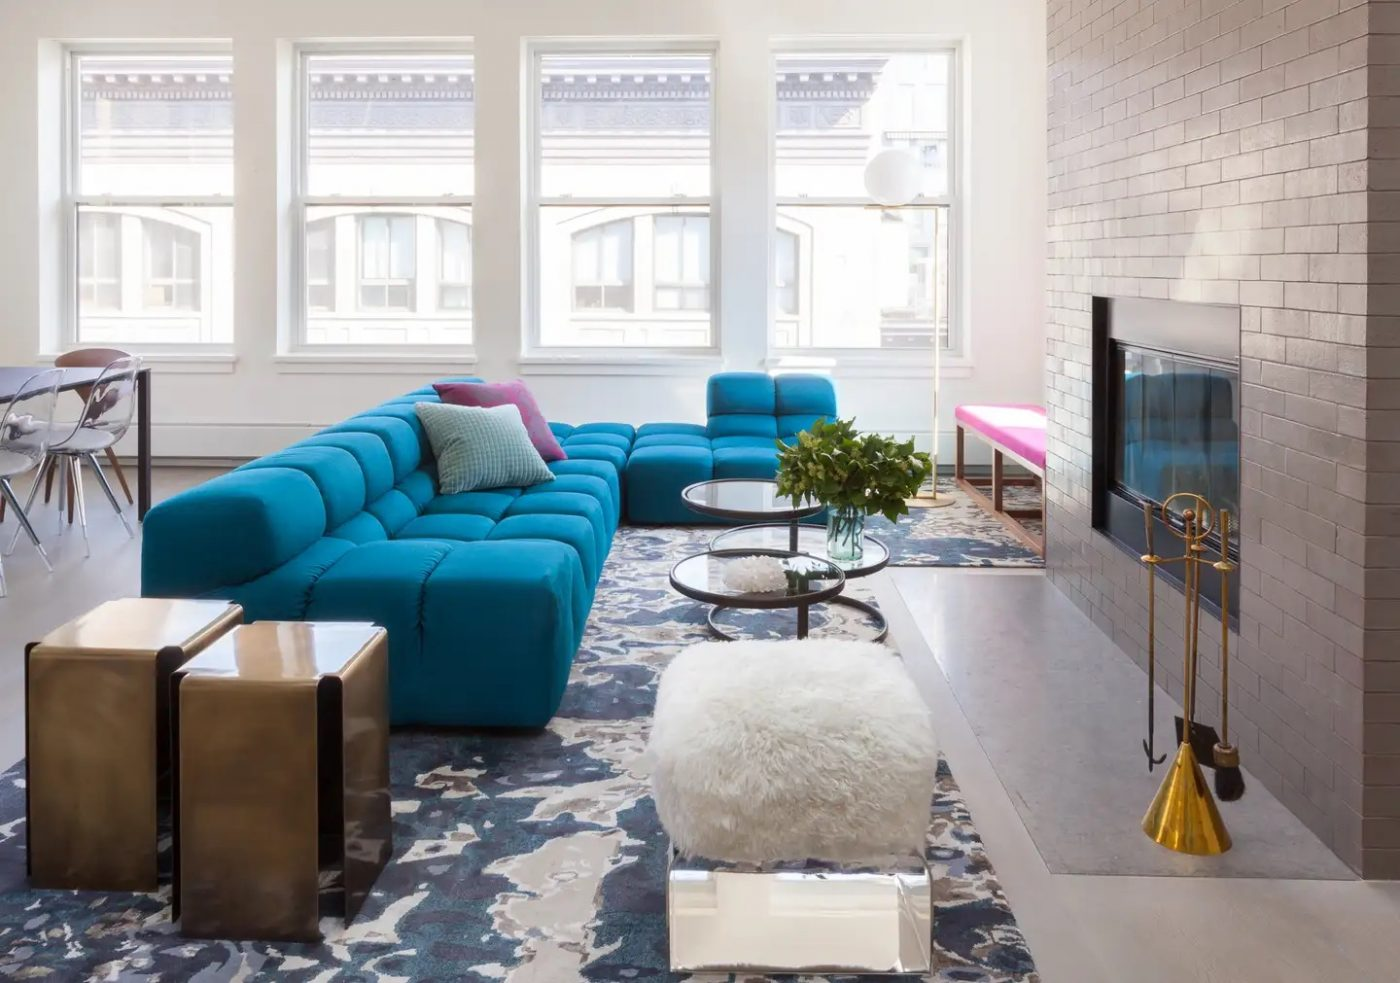 Chelsea Penthouse living room designed by Harris